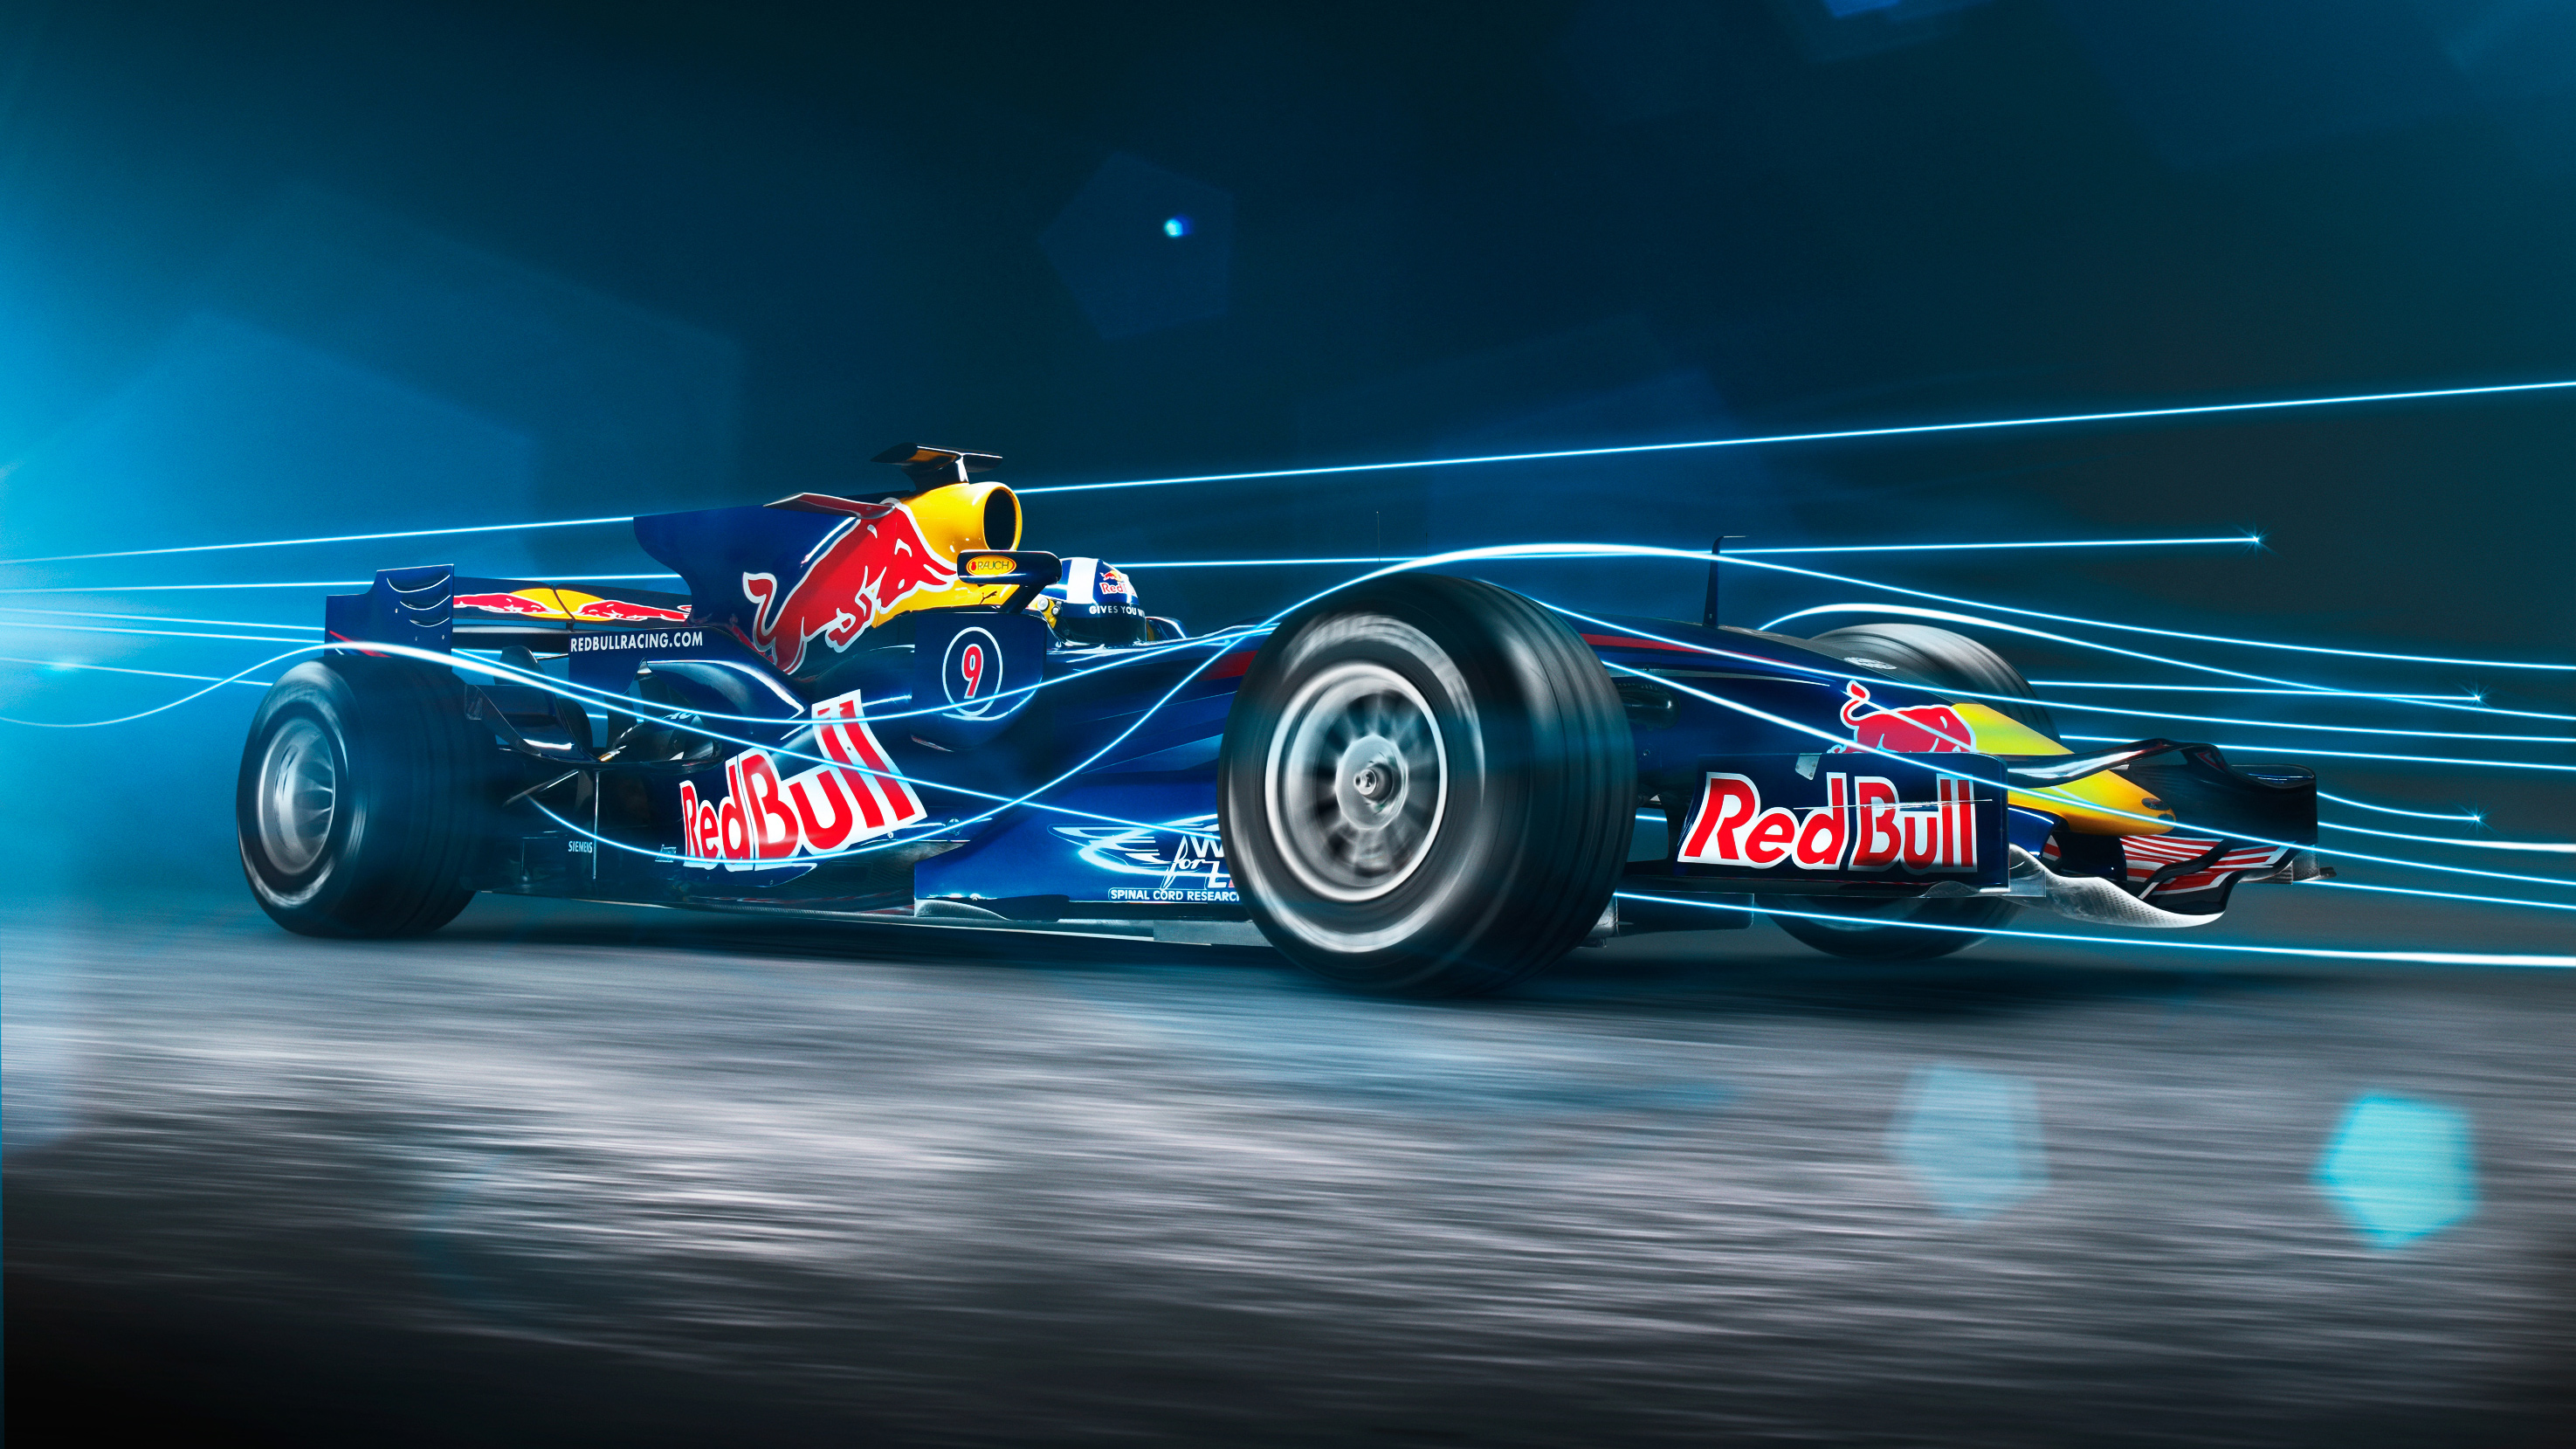 Red Bull Racing F1 Hd Wallpaper Hd Car Wallpapers Id 8031